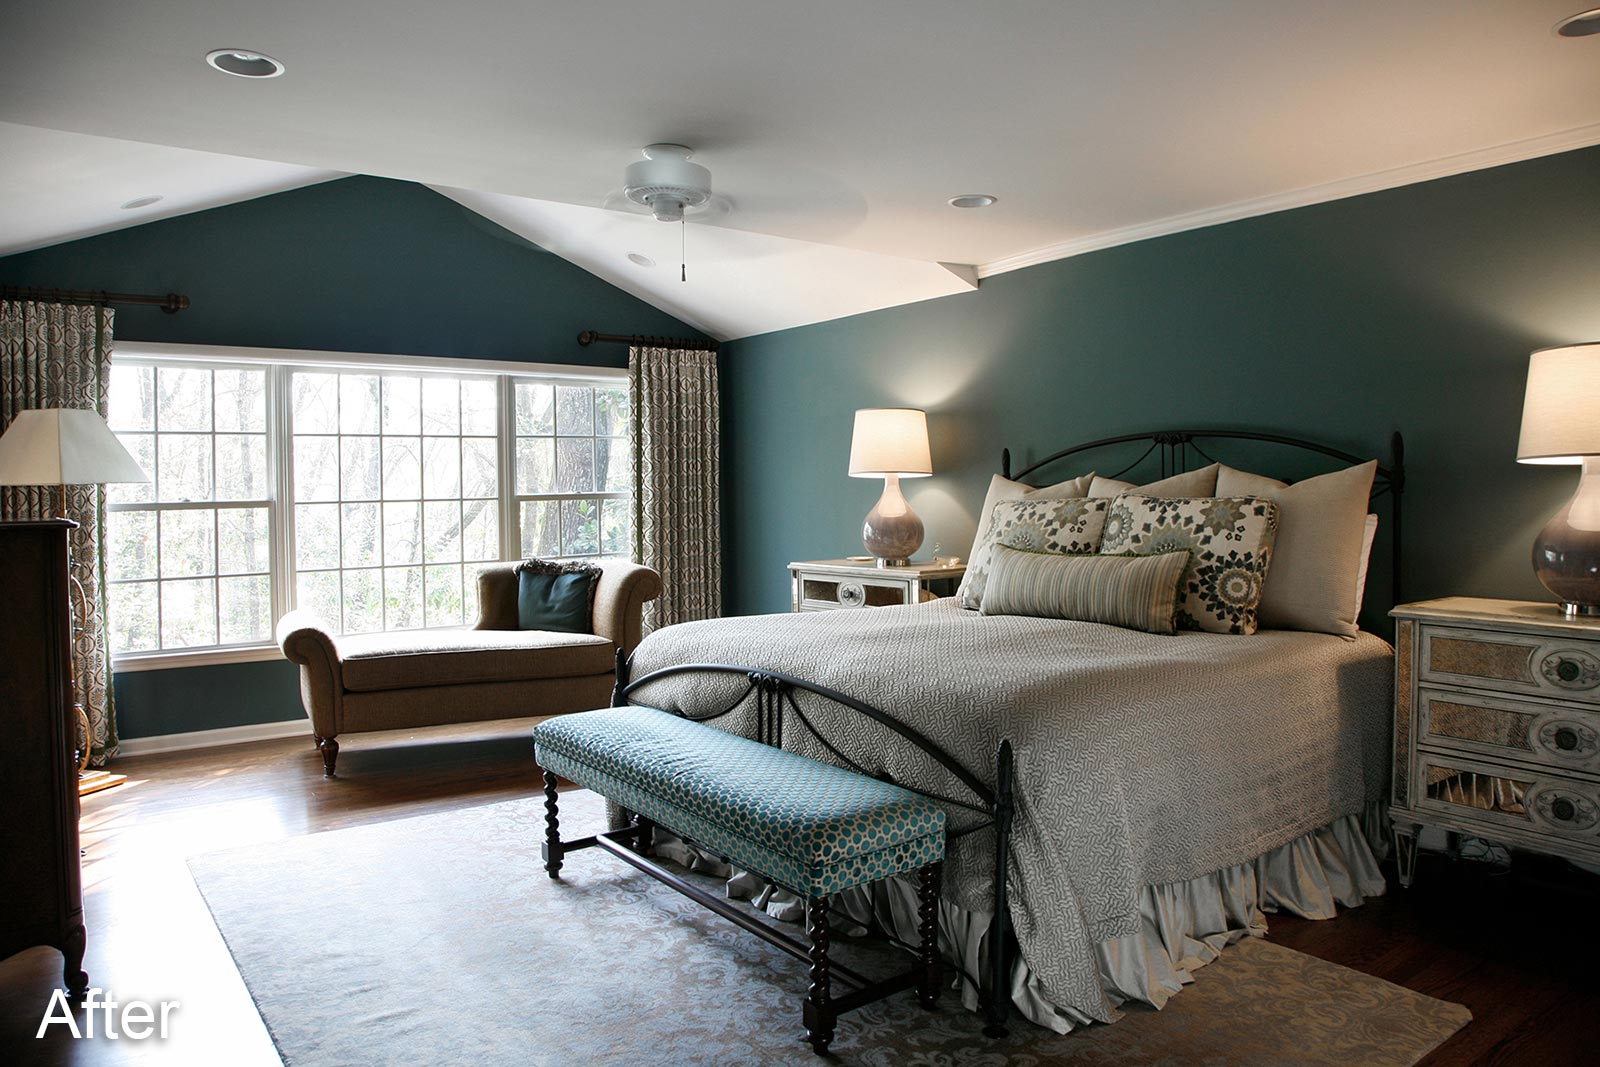 Large bedroom with expansive windows after remodeling